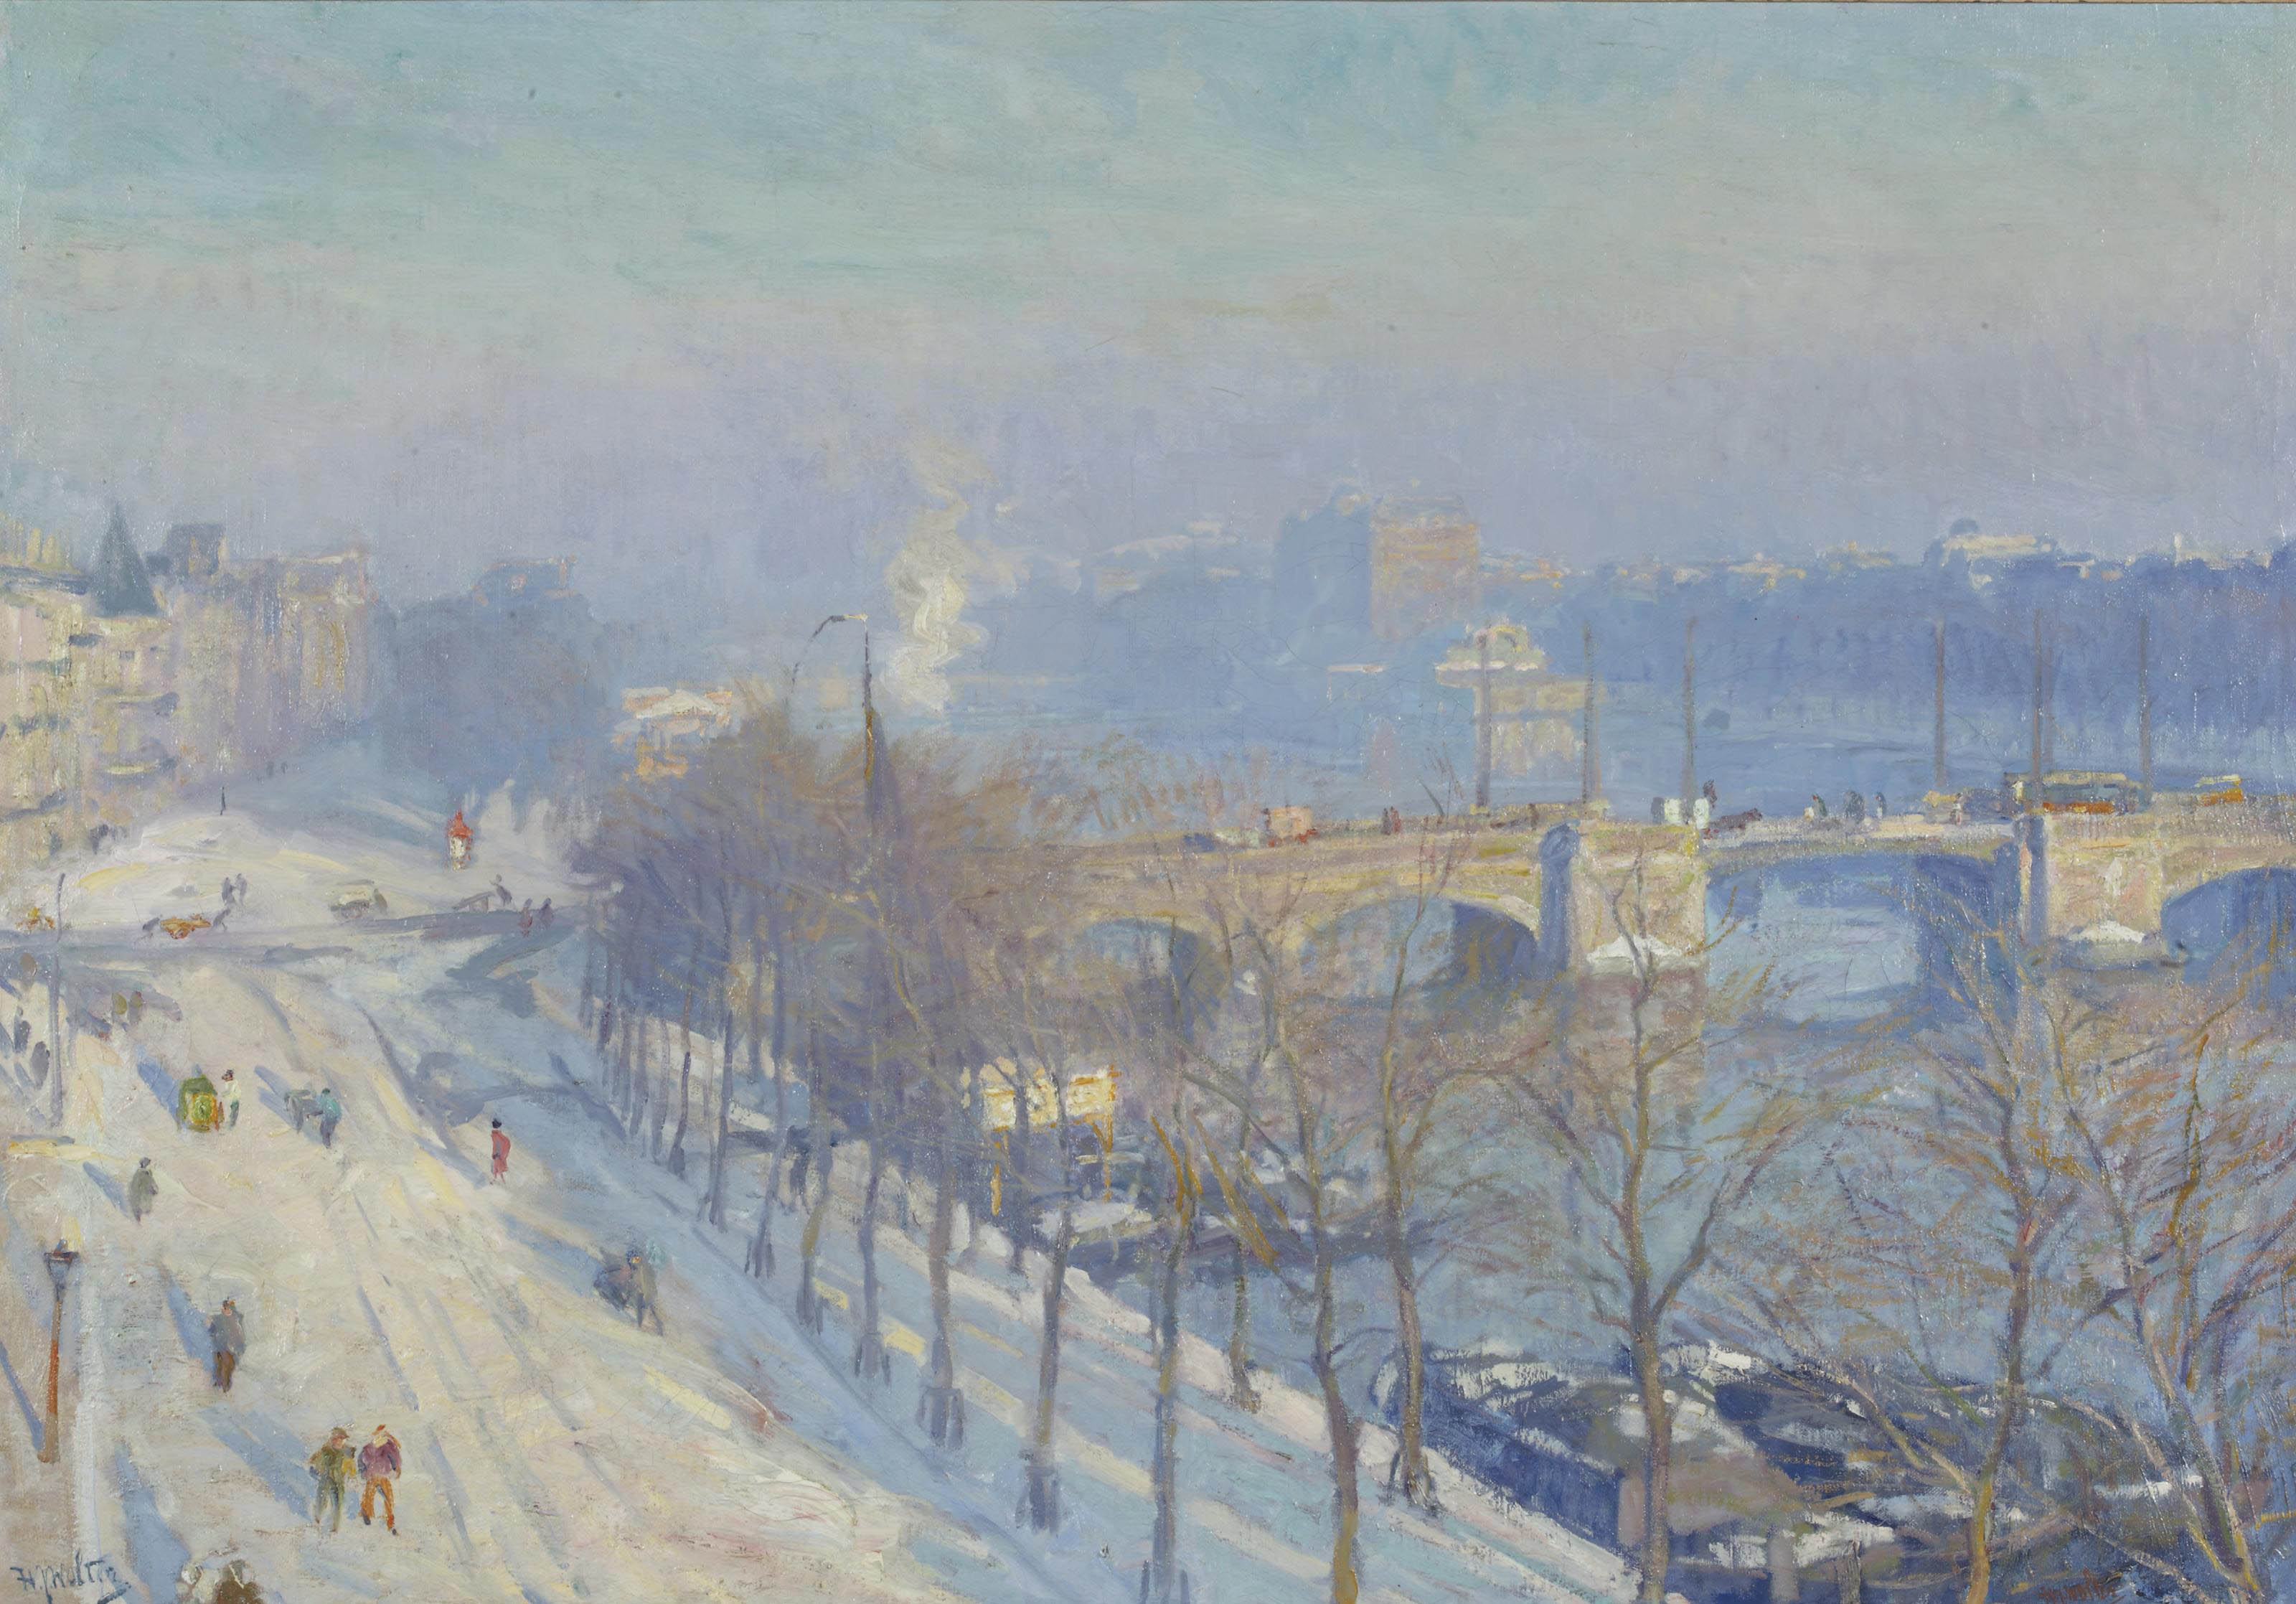 A view of the river Amstel in winter, seen from the artist's studio, Amsterdam